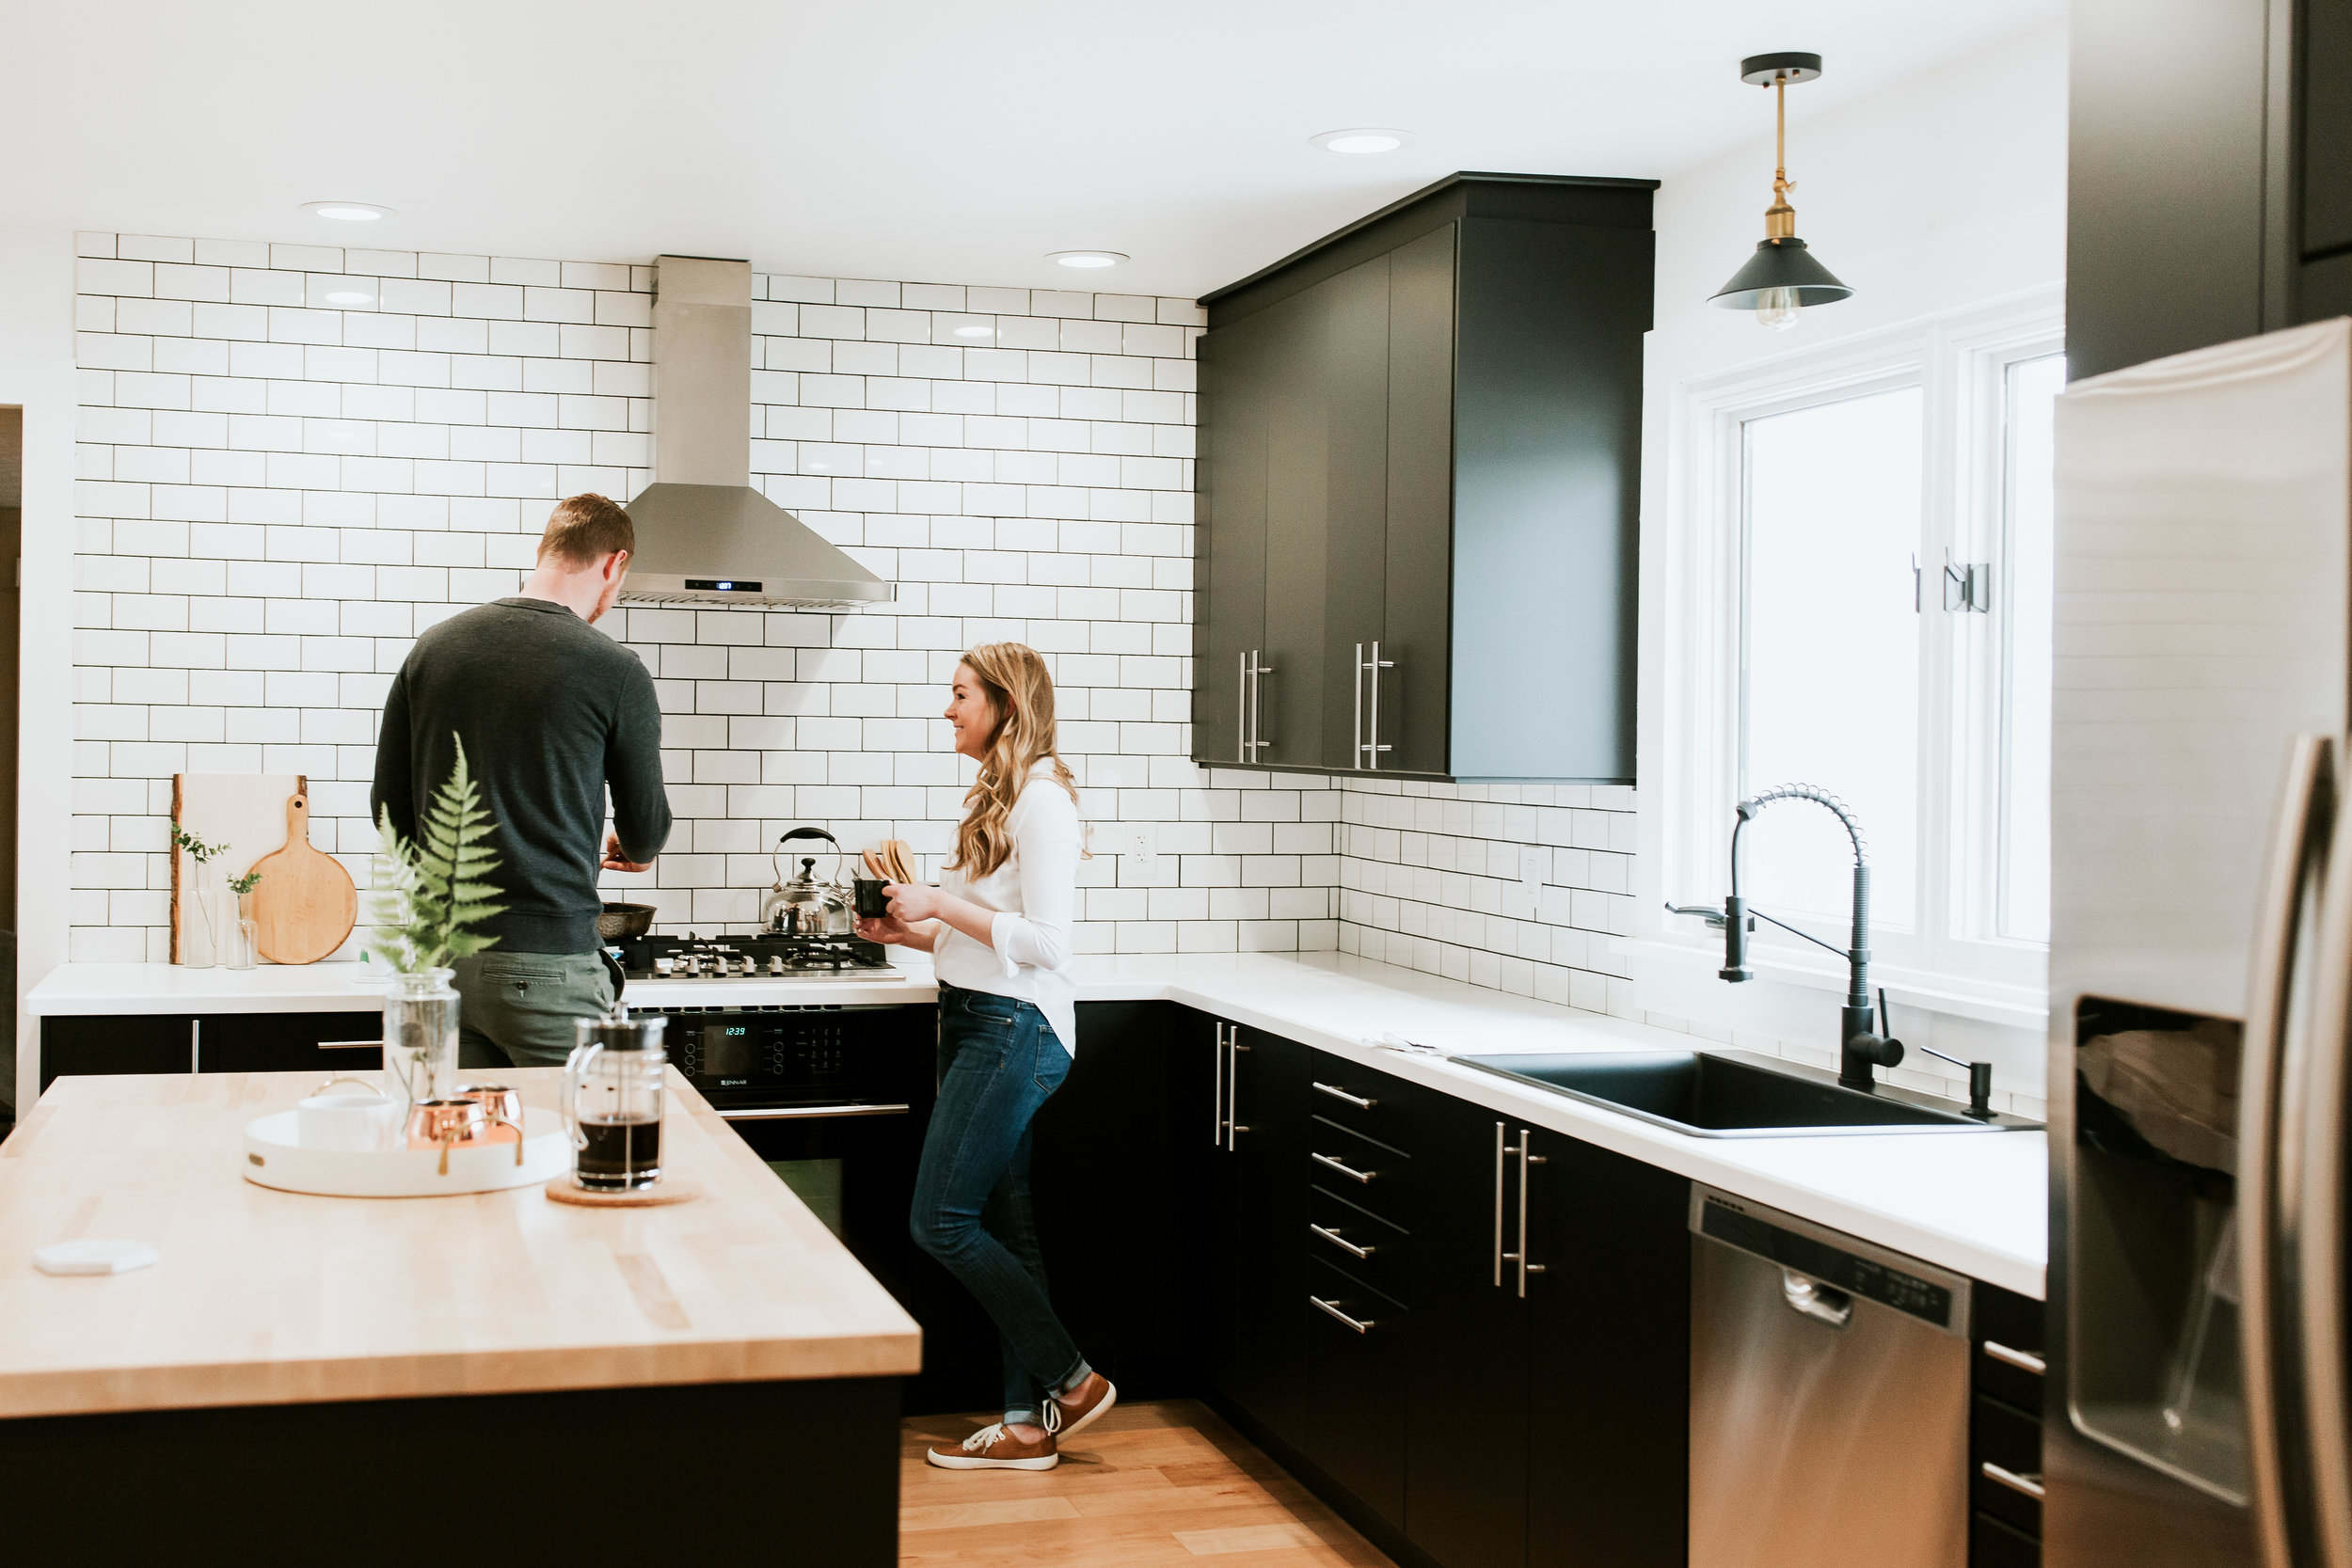 10 kitchen remodel do's and don'ts